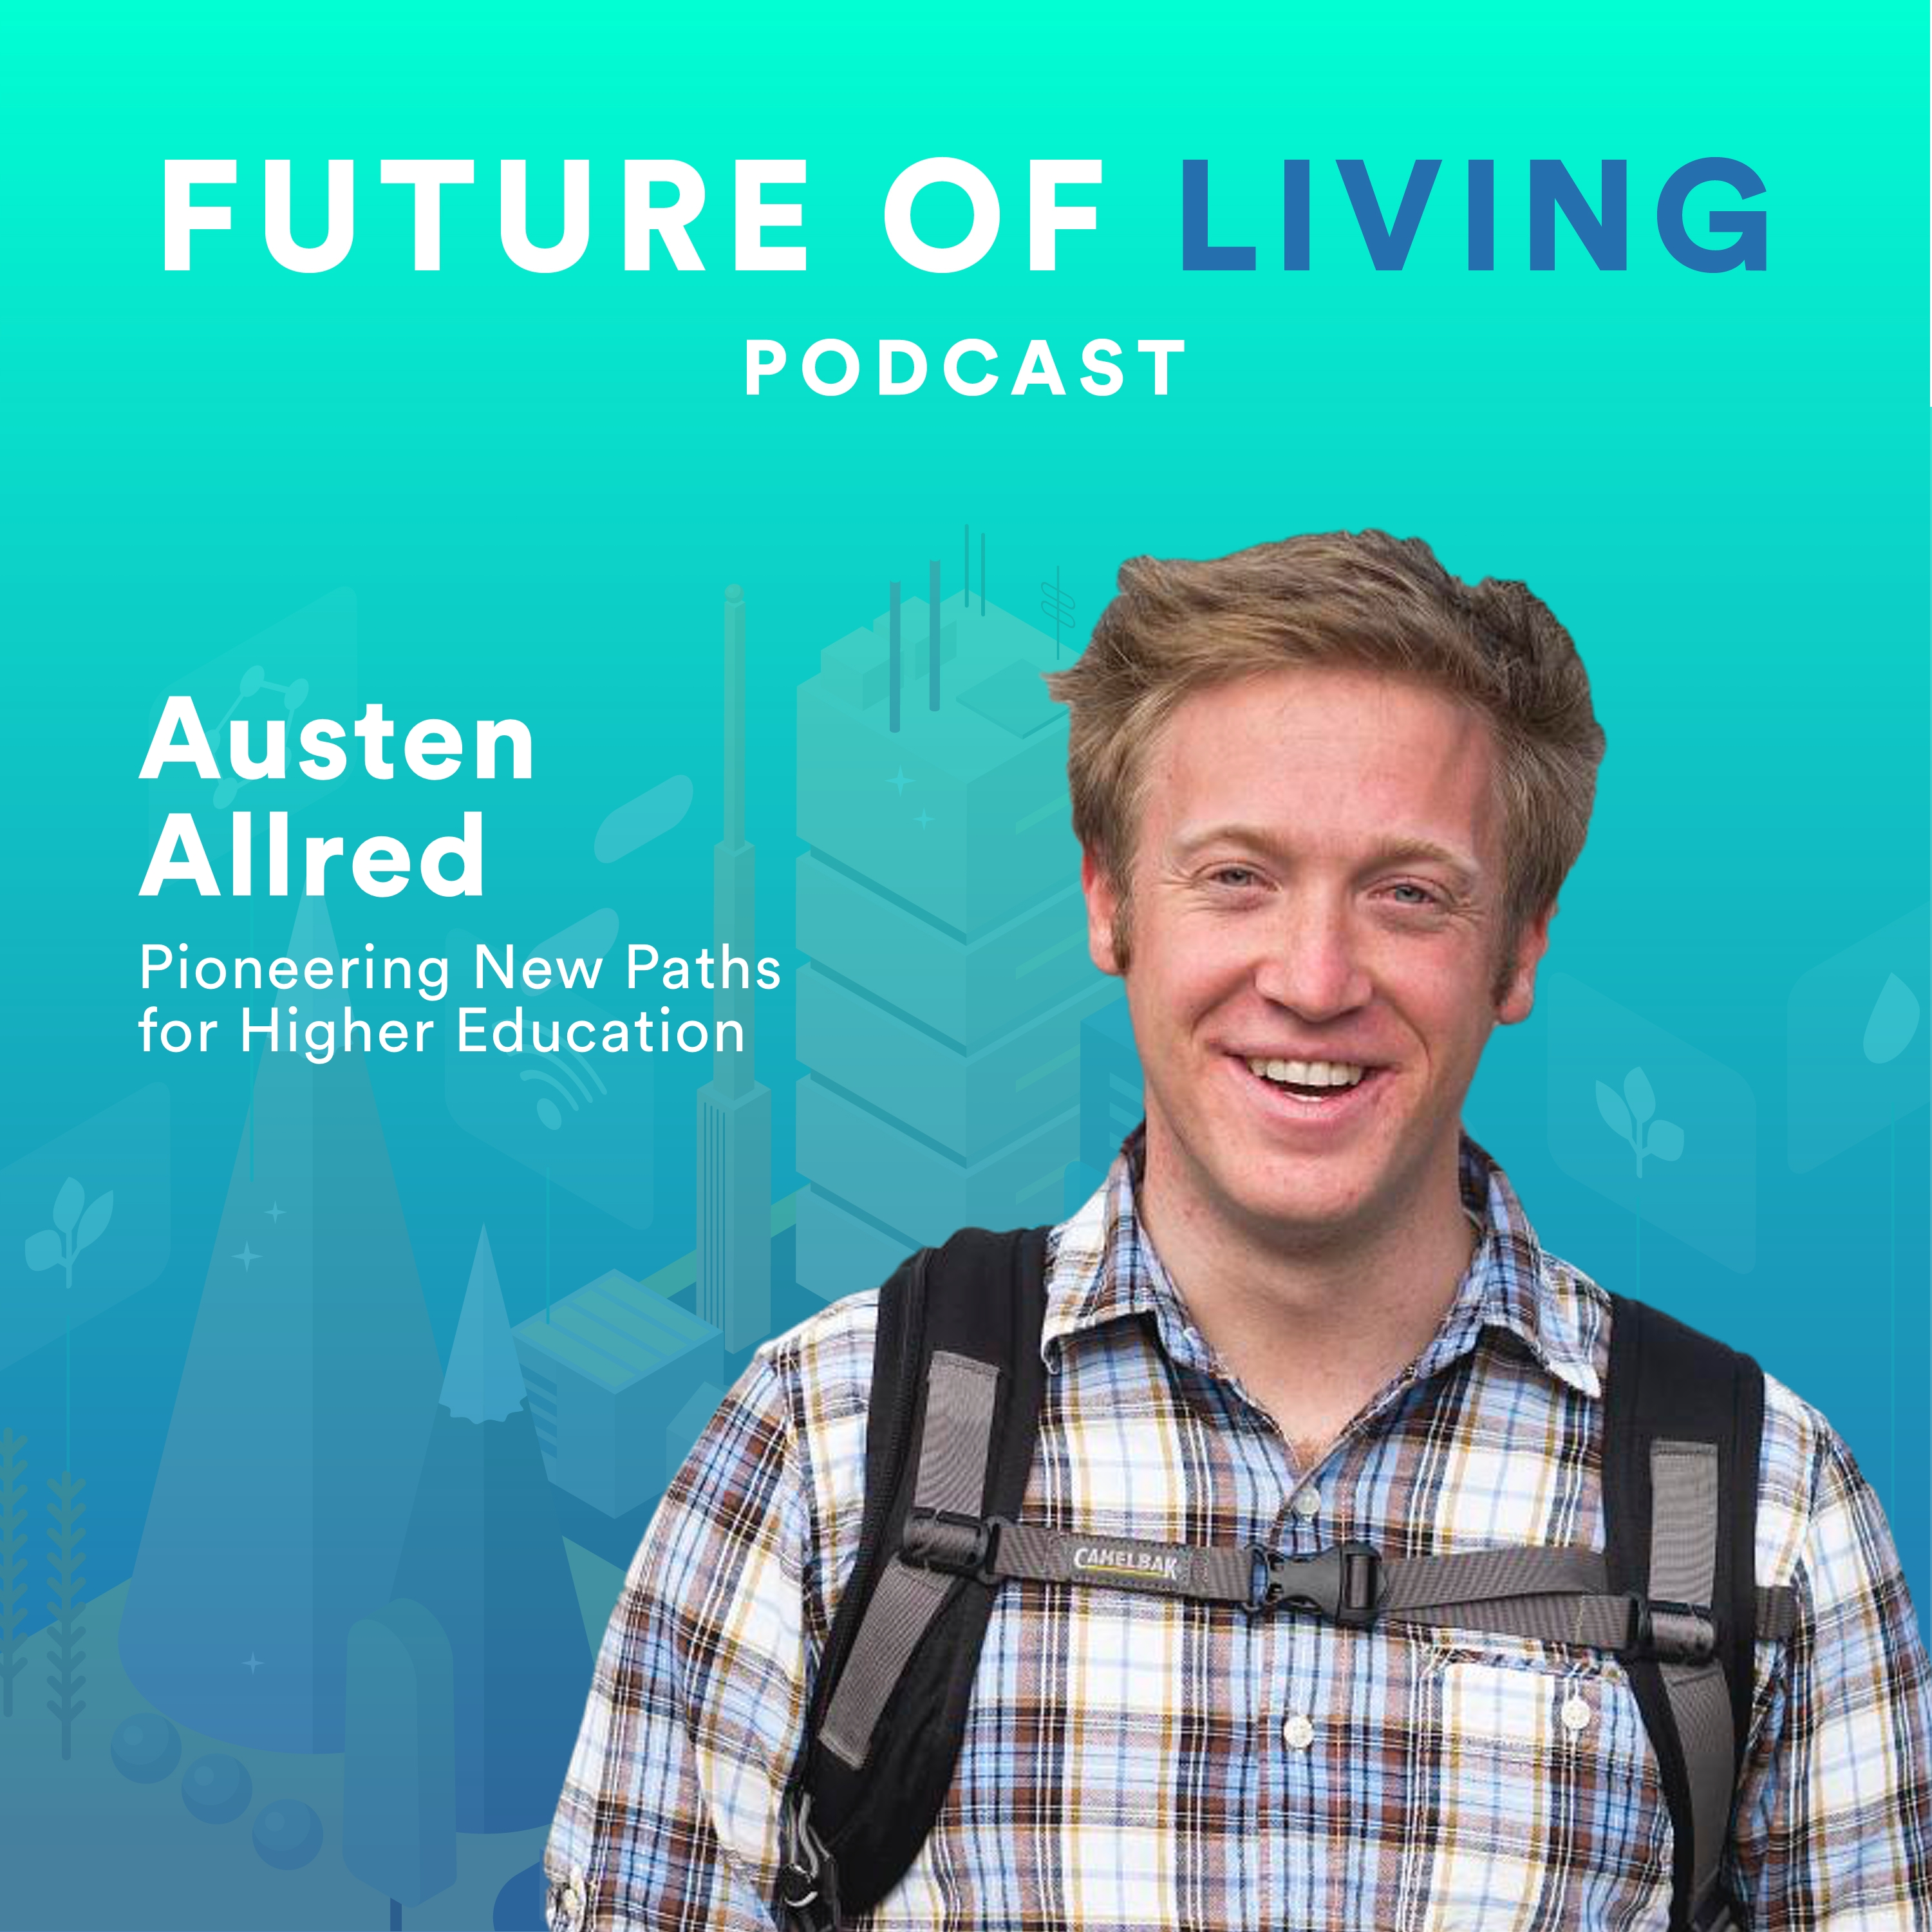 Austen Allred – Pioneering New Paths for Higher Education